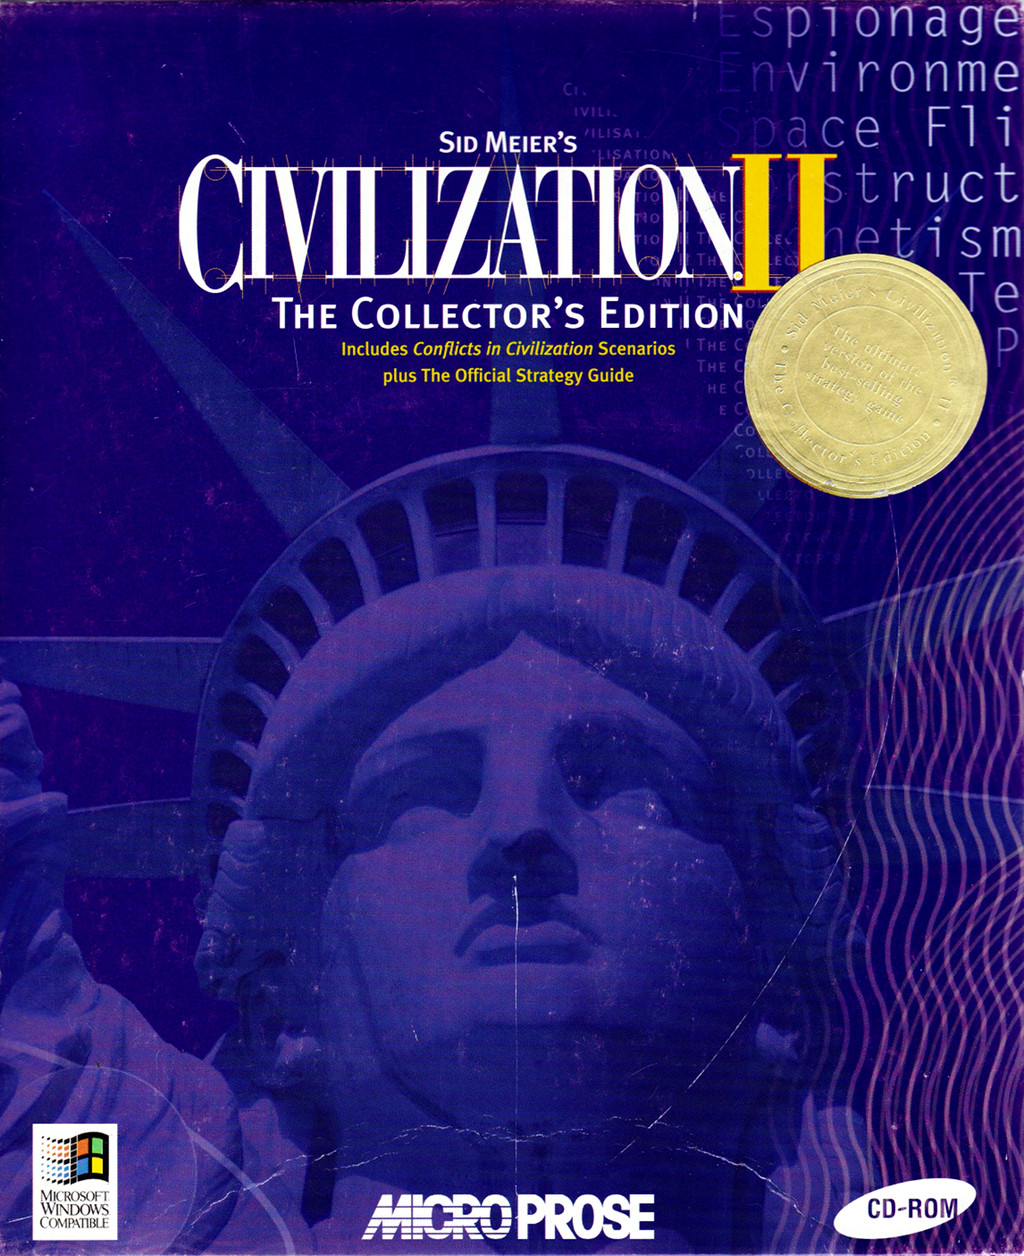 Civilization II: The Collector's Edition